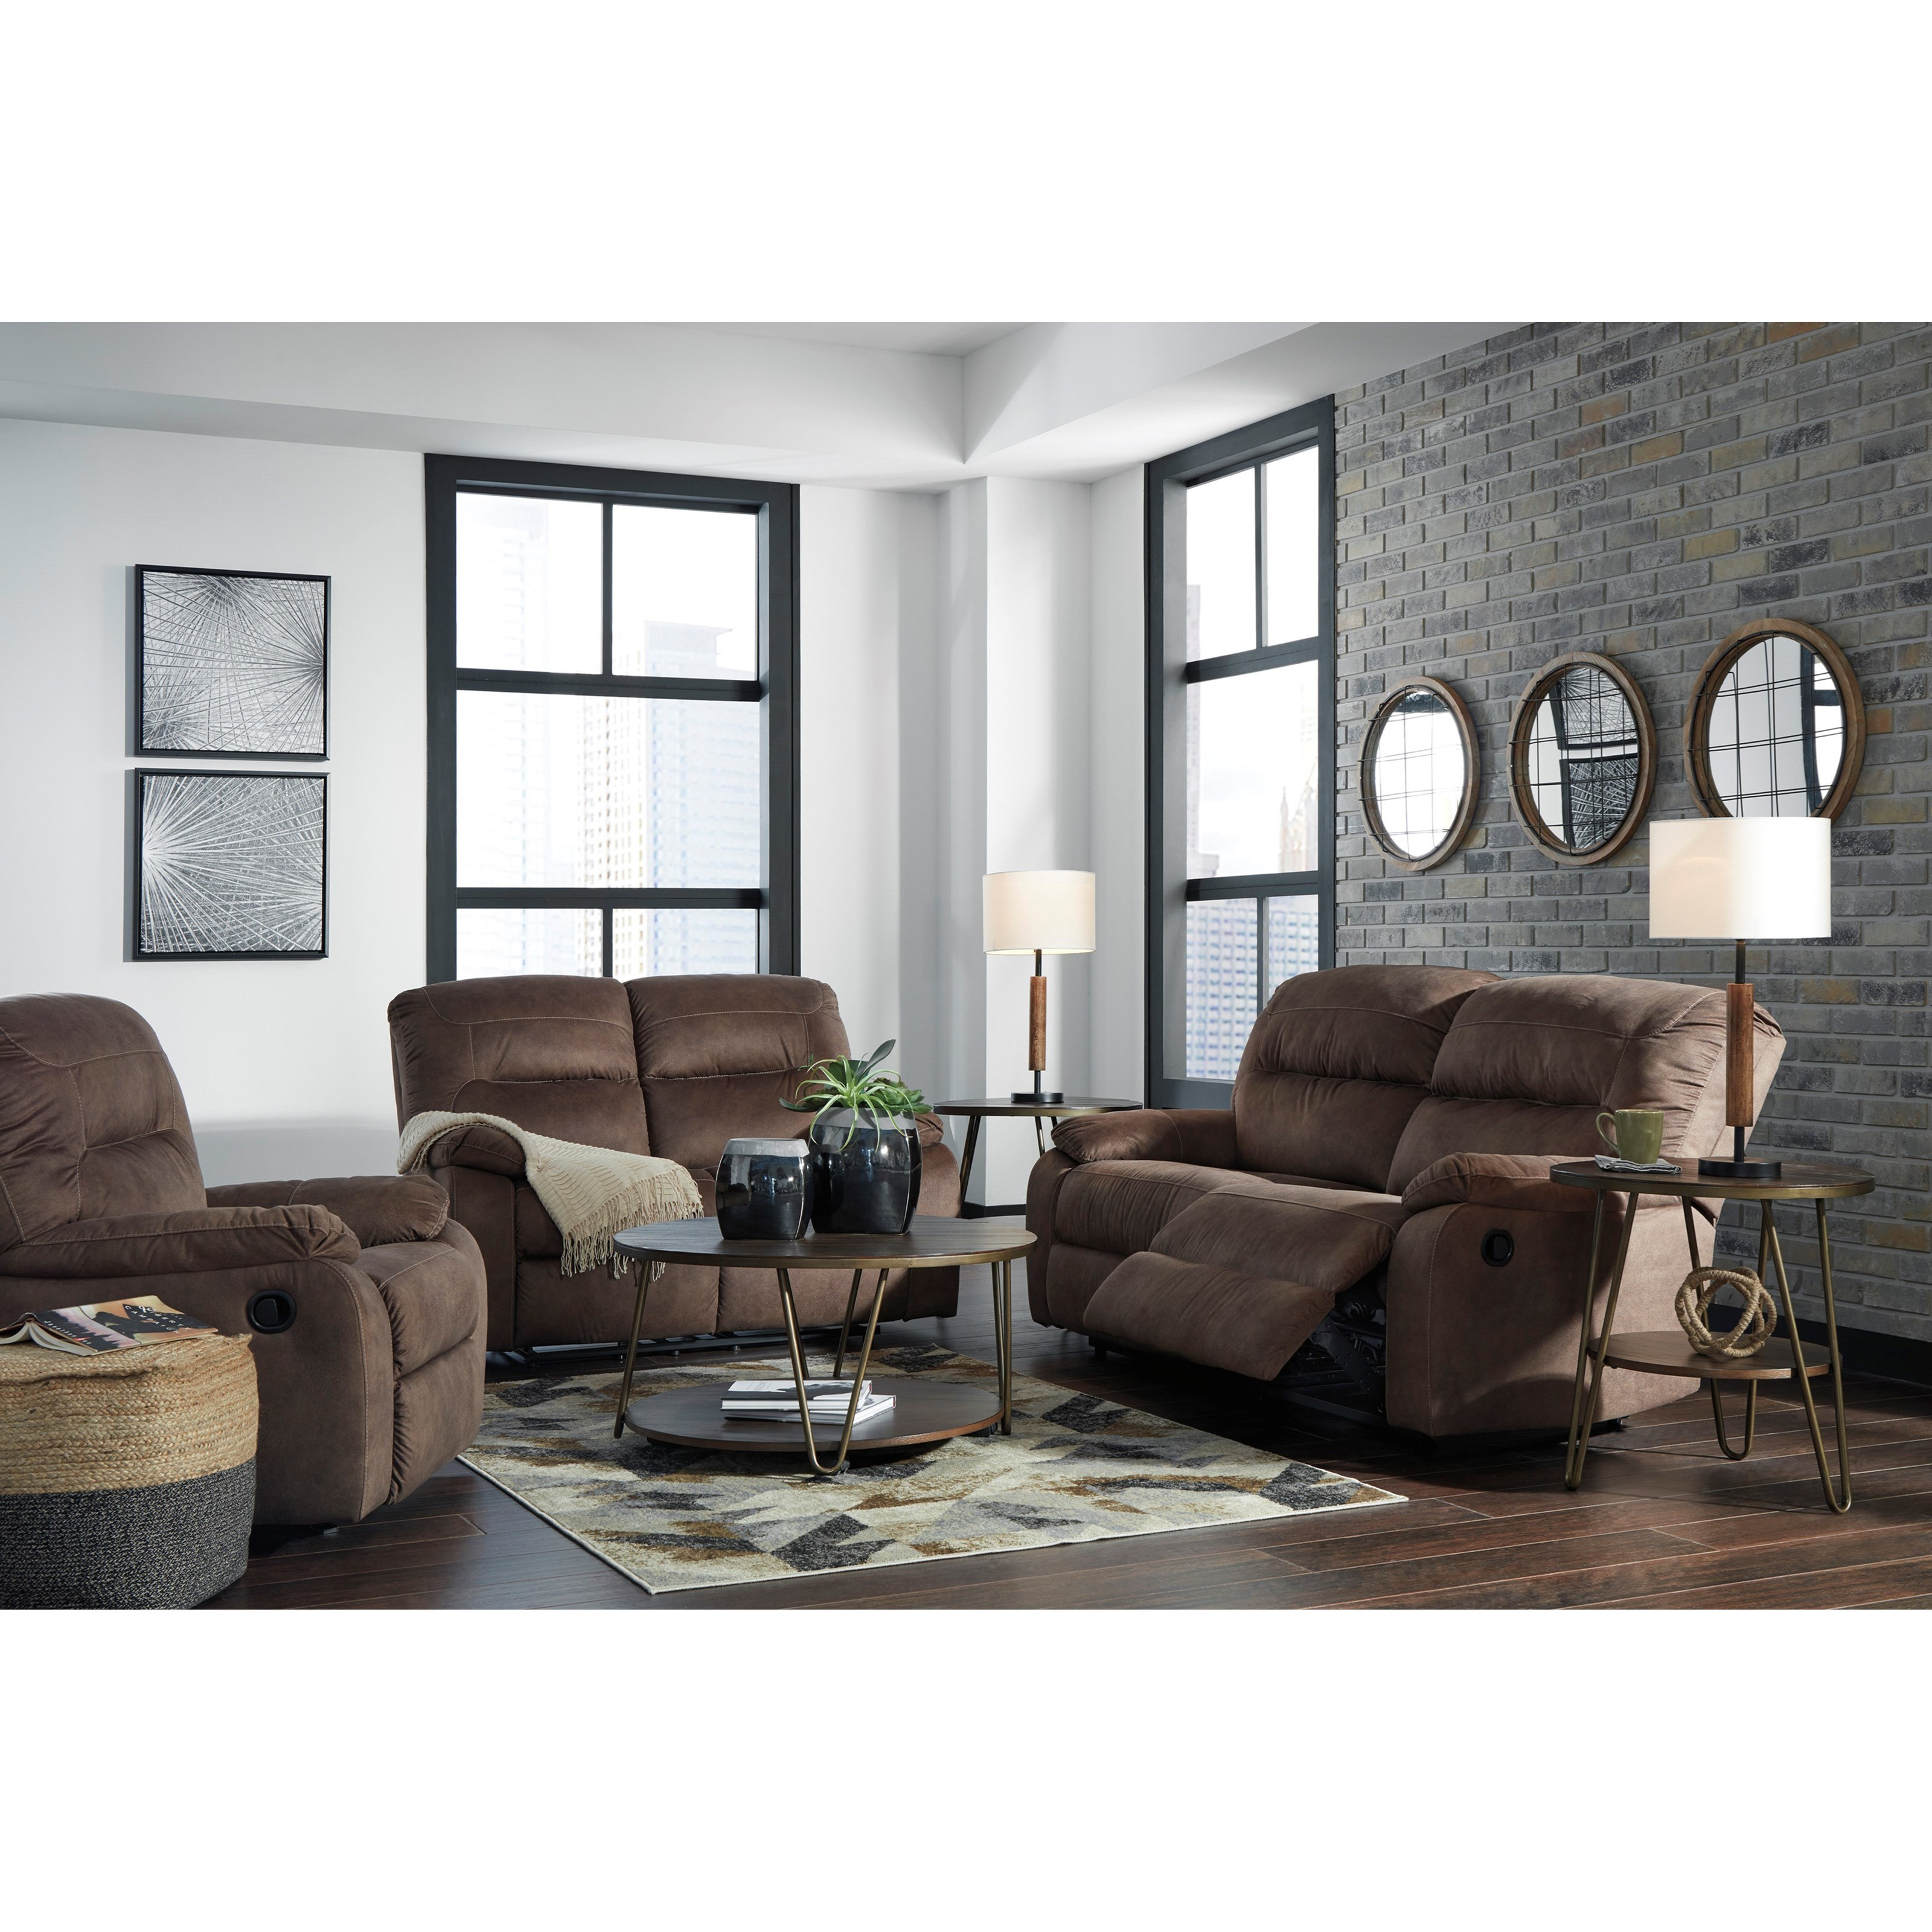 Apartment Furniture: Signature Design By Ashley Bolzano Reclining Living Room